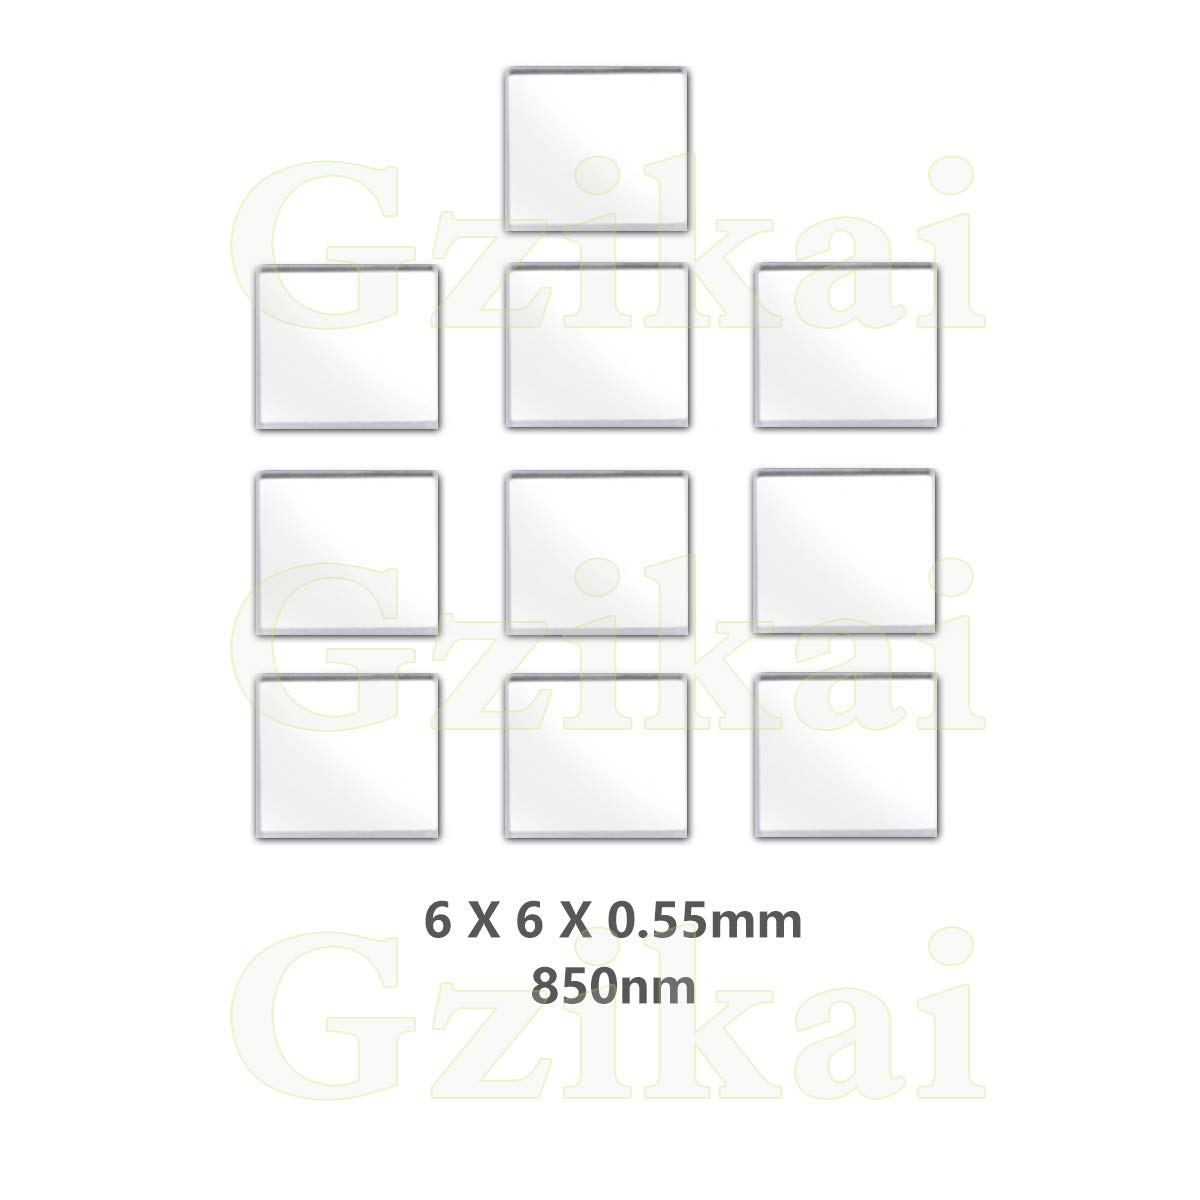 Gzikai 10pcs/1 Lot 6mm×6mm×0.55mm 850nm Optical IR-Cut Narrow Band Pass Filter for Barcode Scanner Infrared lense and Face Recognition by Gzikai